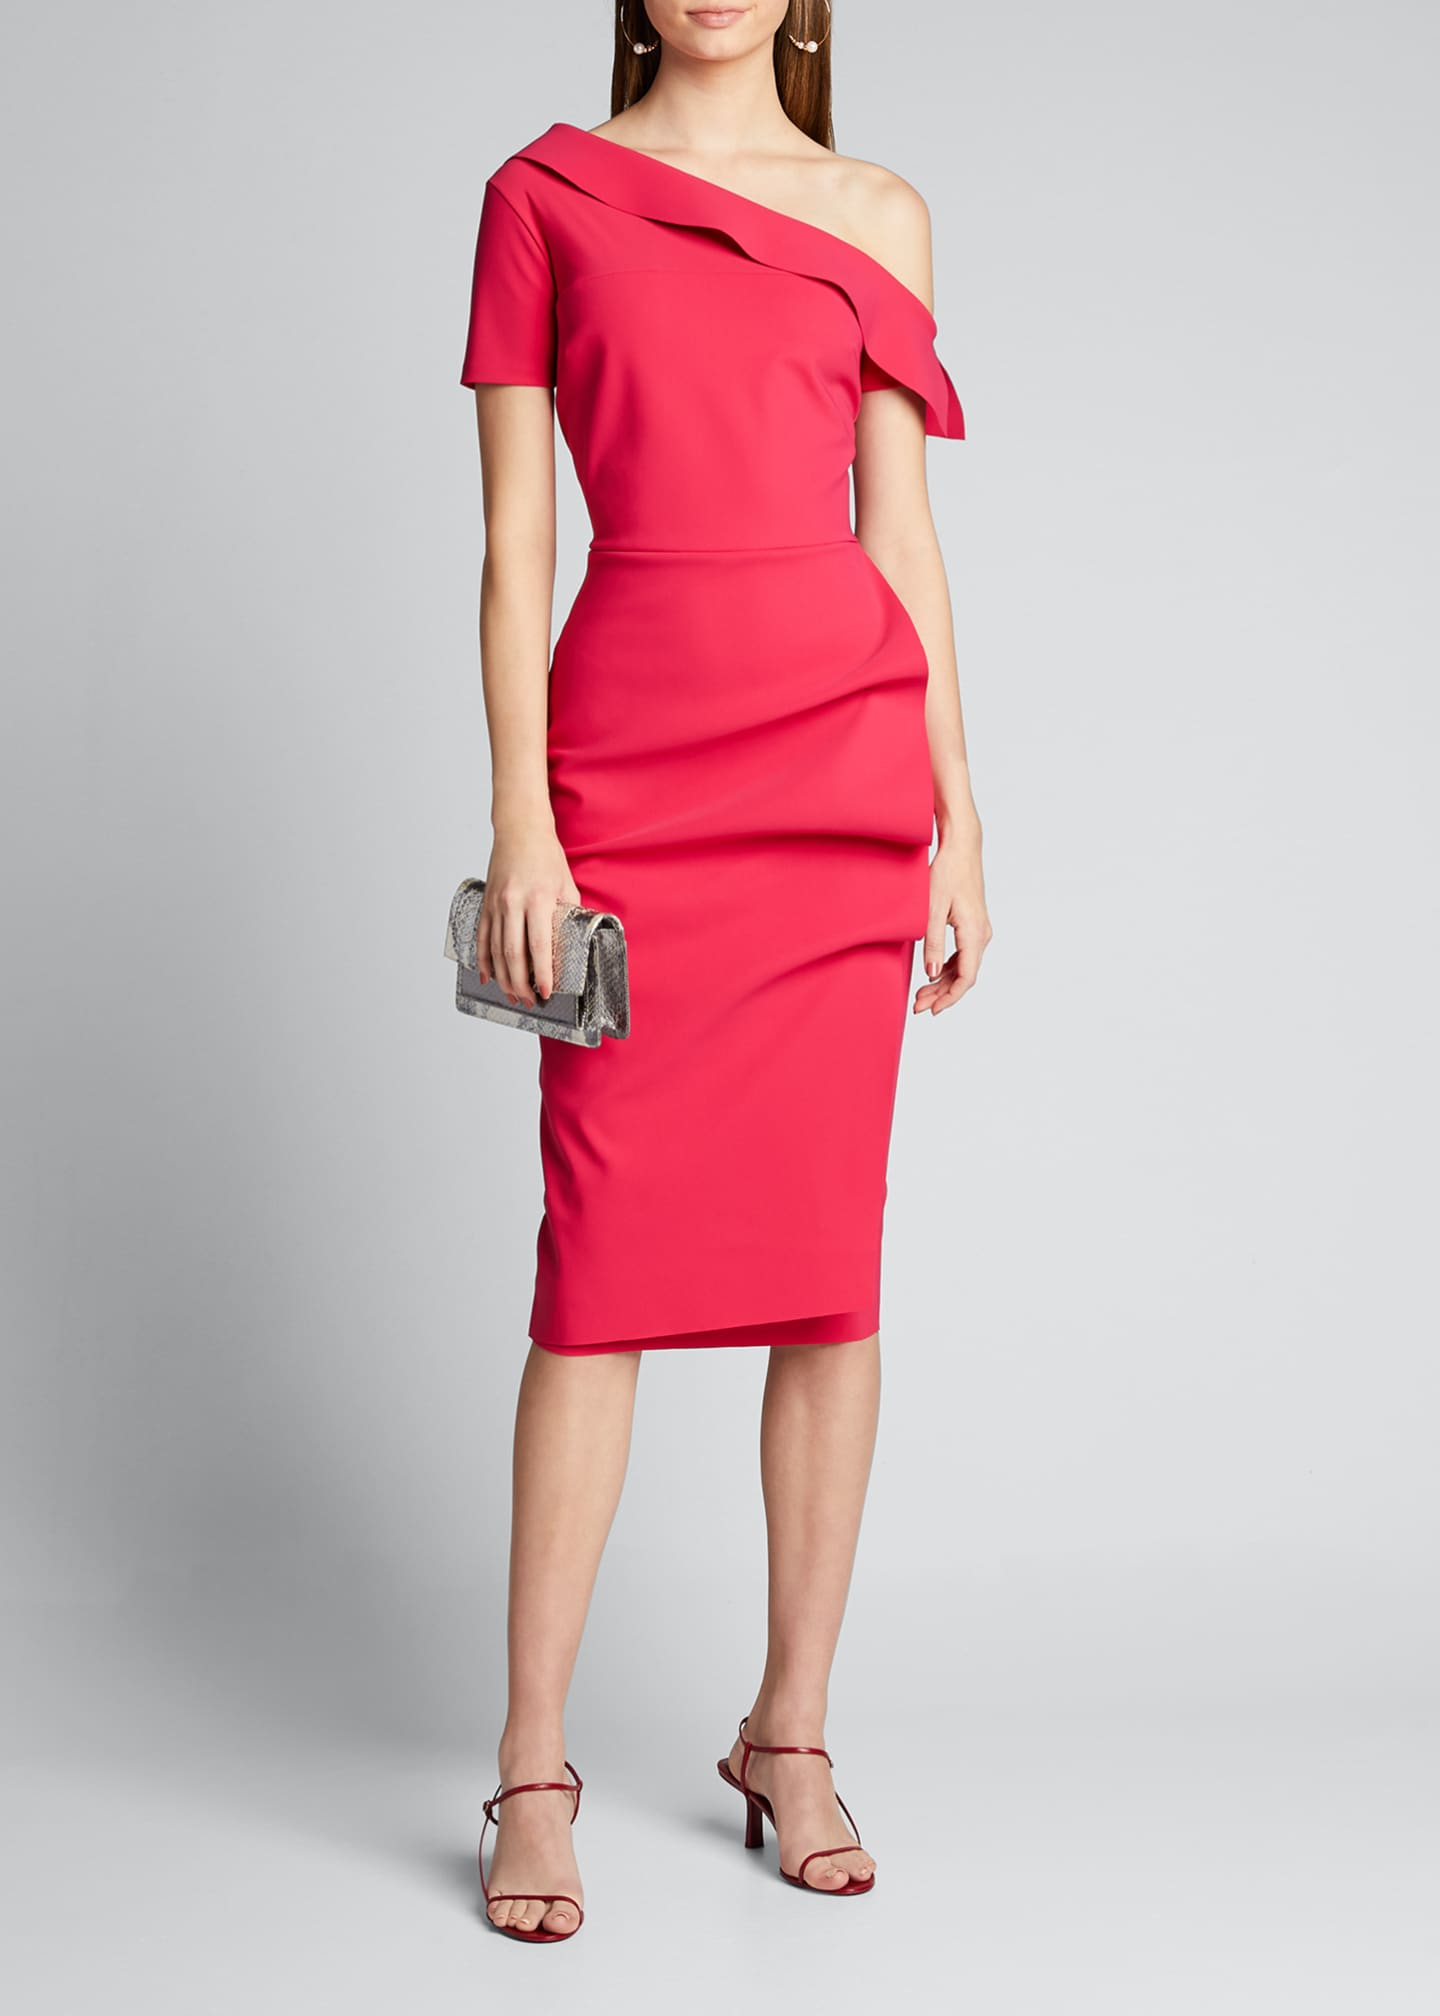 Image 1 of 5: Asymmetric Shoulder Ruffle Skirt Dress